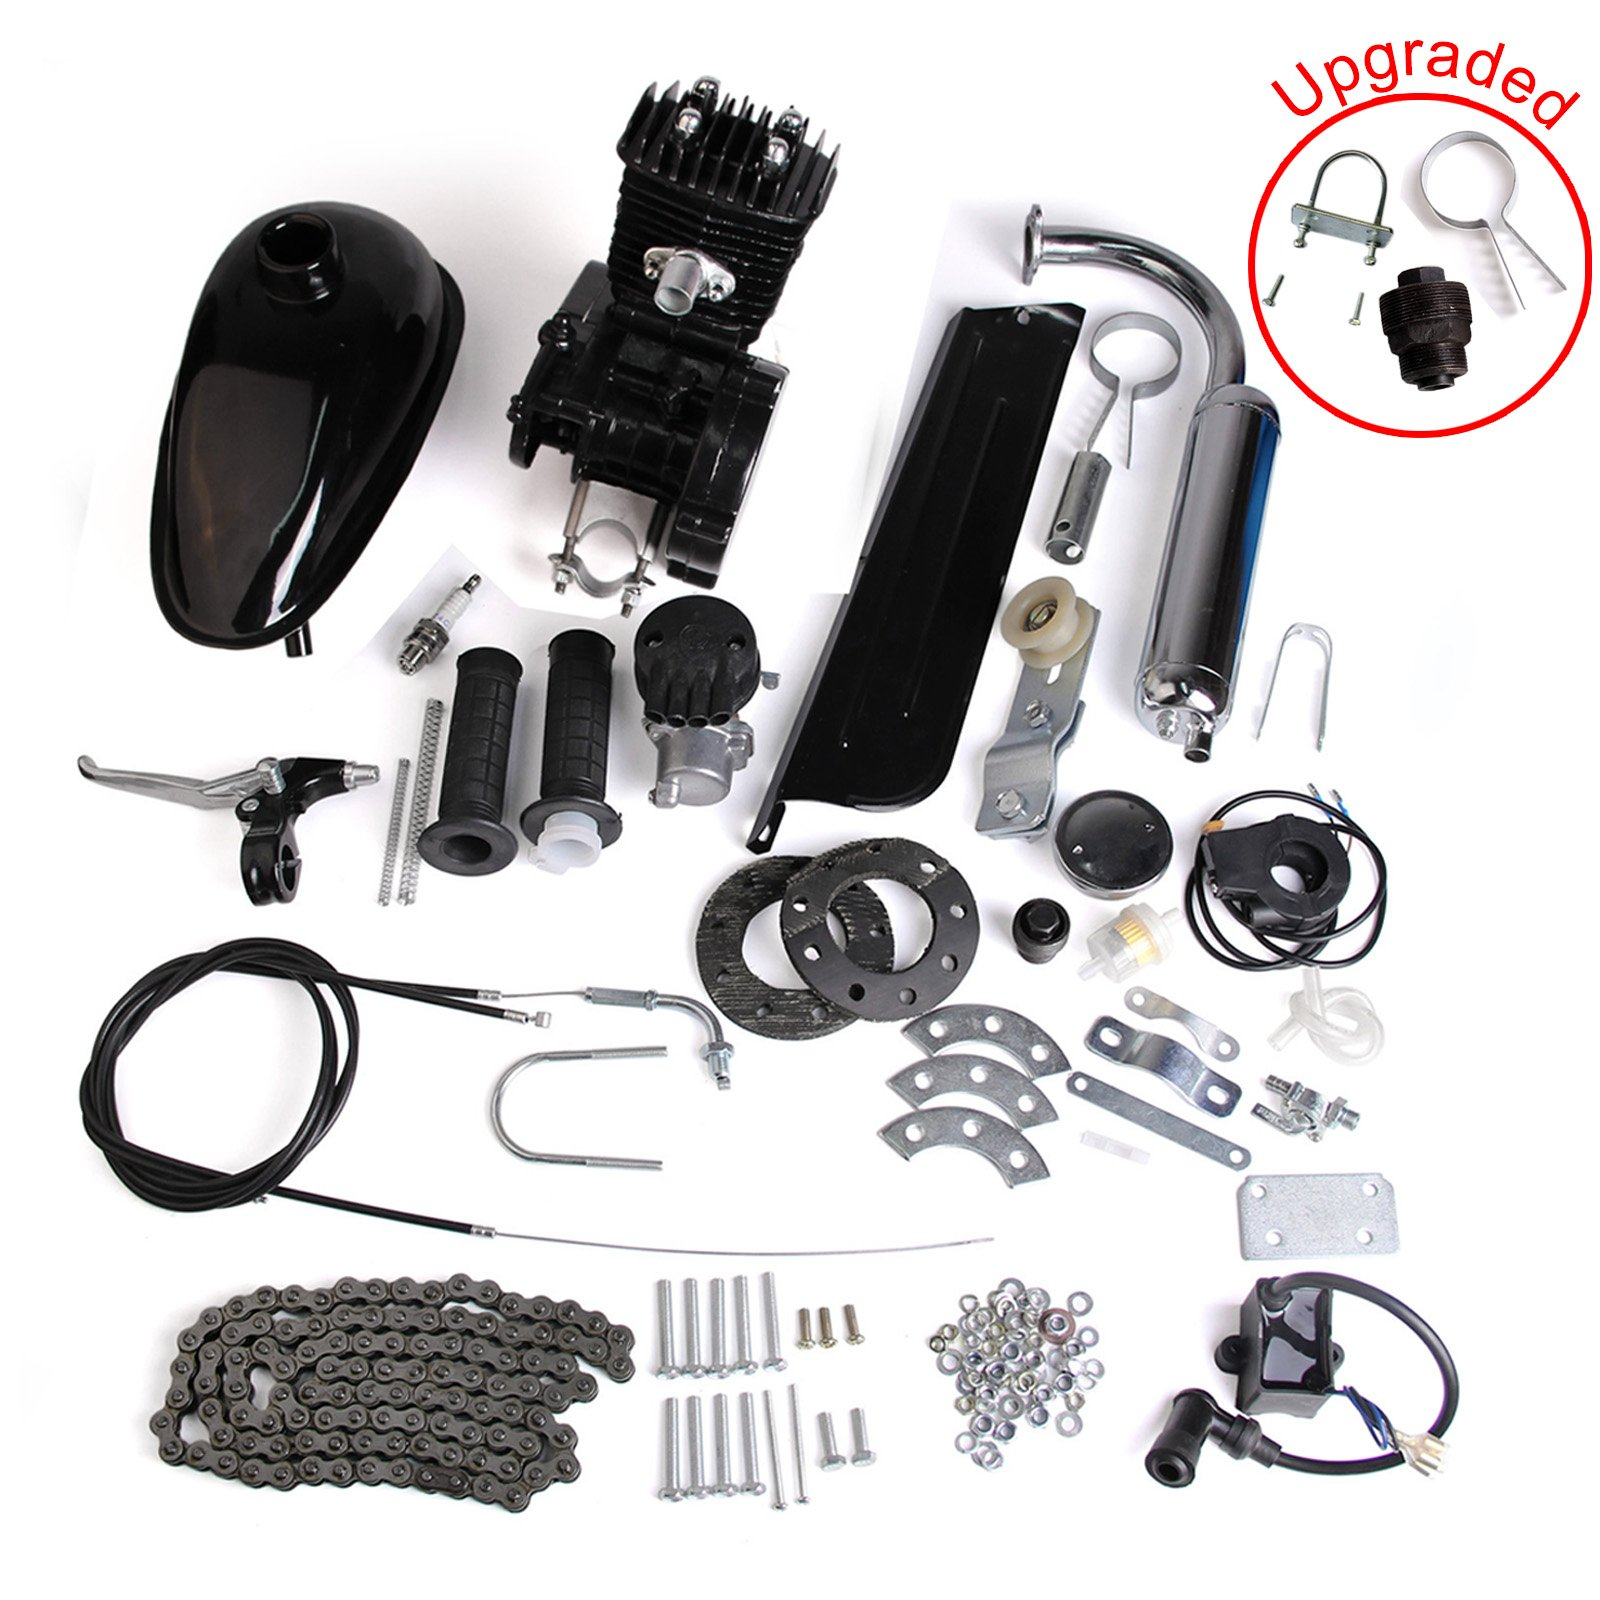 AURELIO TECH 80cc 2-Stroke Motor Engine Kit Gas for Motorized Bicycle Bike Black by AURELIO TECH